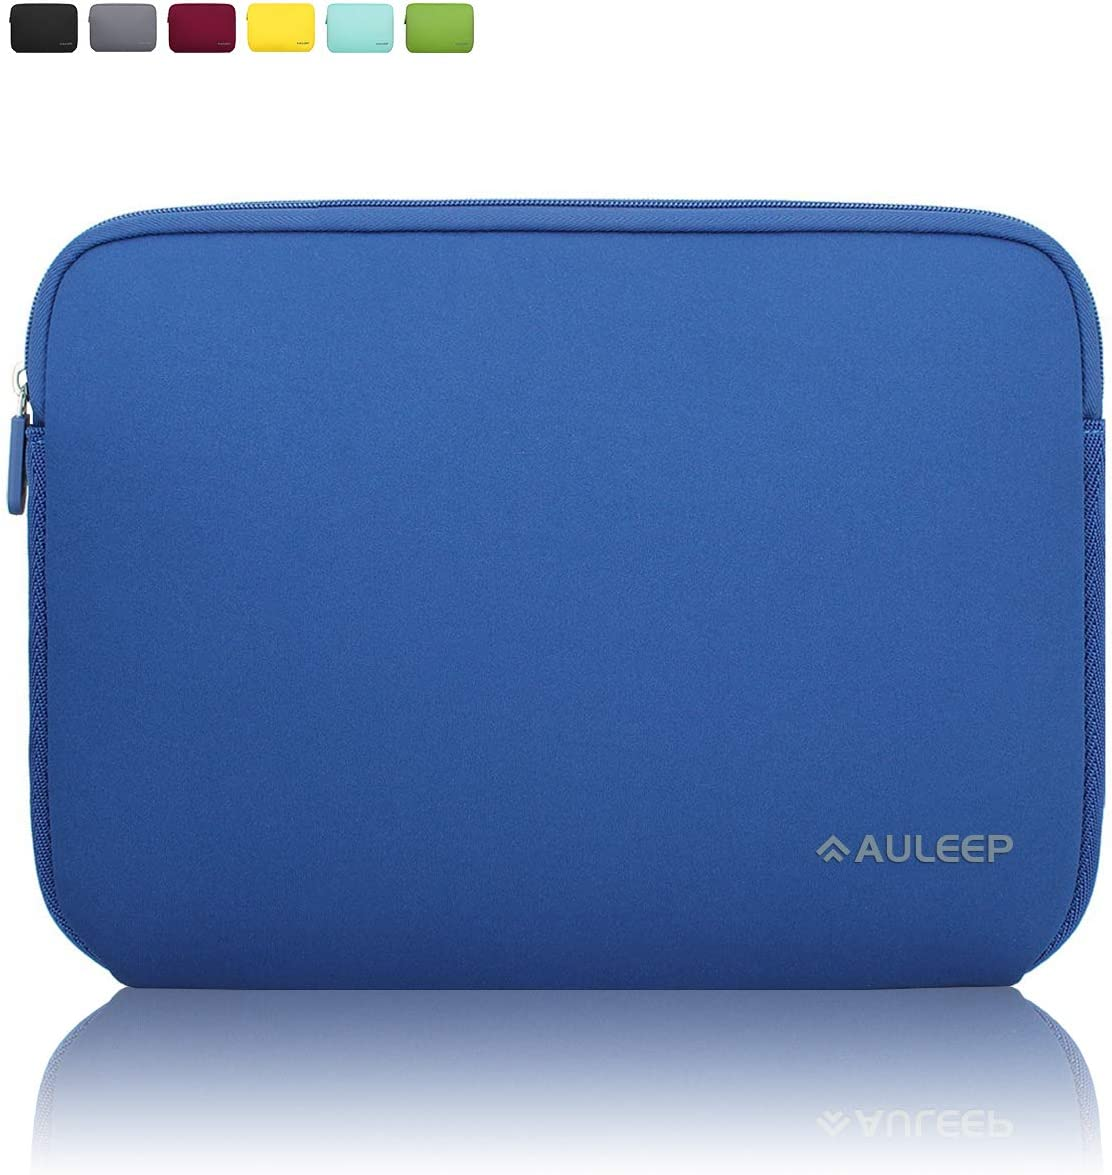 AULEEP 13-14 Inch Laptop Sleeves, Neoprene Notebook Computer Pocket Tablet Carrying Sleeve/Water-Resistant Compatible Laptop Sleeve for Acer/Asus/Dell/Lenovo/HP, Dark Blue